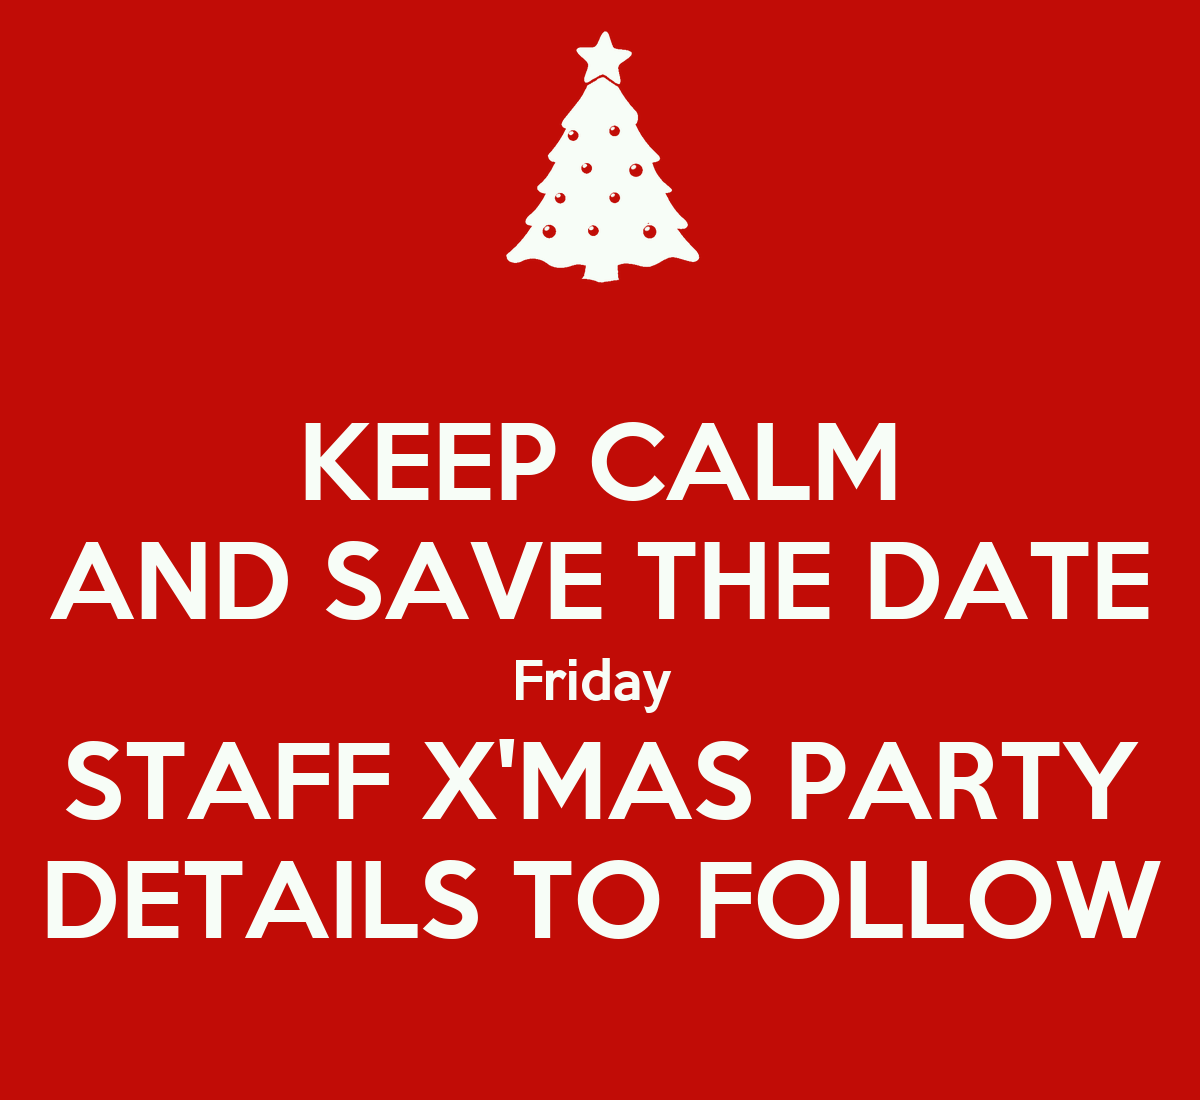 KEEP CALM AND SAVE THE DATE Friday STAFF X'MAS PARTY DETAILS TO FOLLOW ...: keepcalm-o-matic.co.uk/p/keep-calm-and-save-the-date-friday-staff...